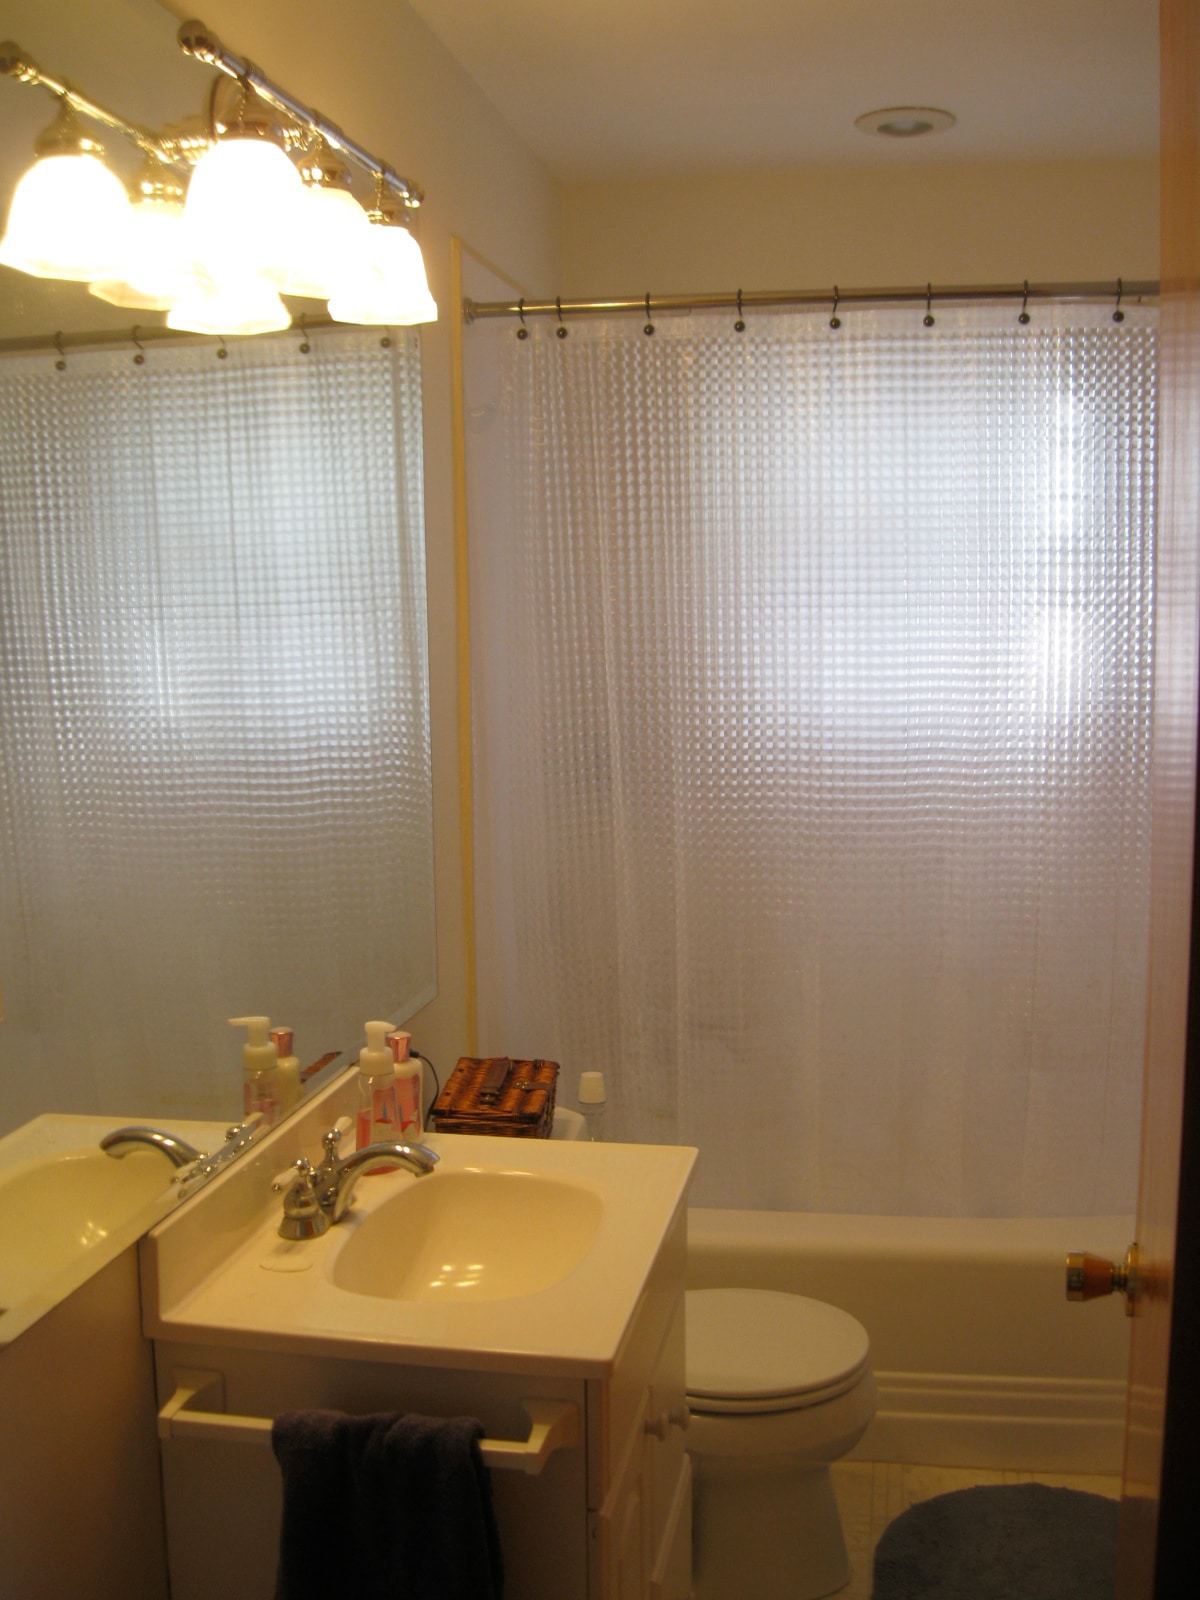 Bathroom- Clean and simple with everything you need. (towels included)